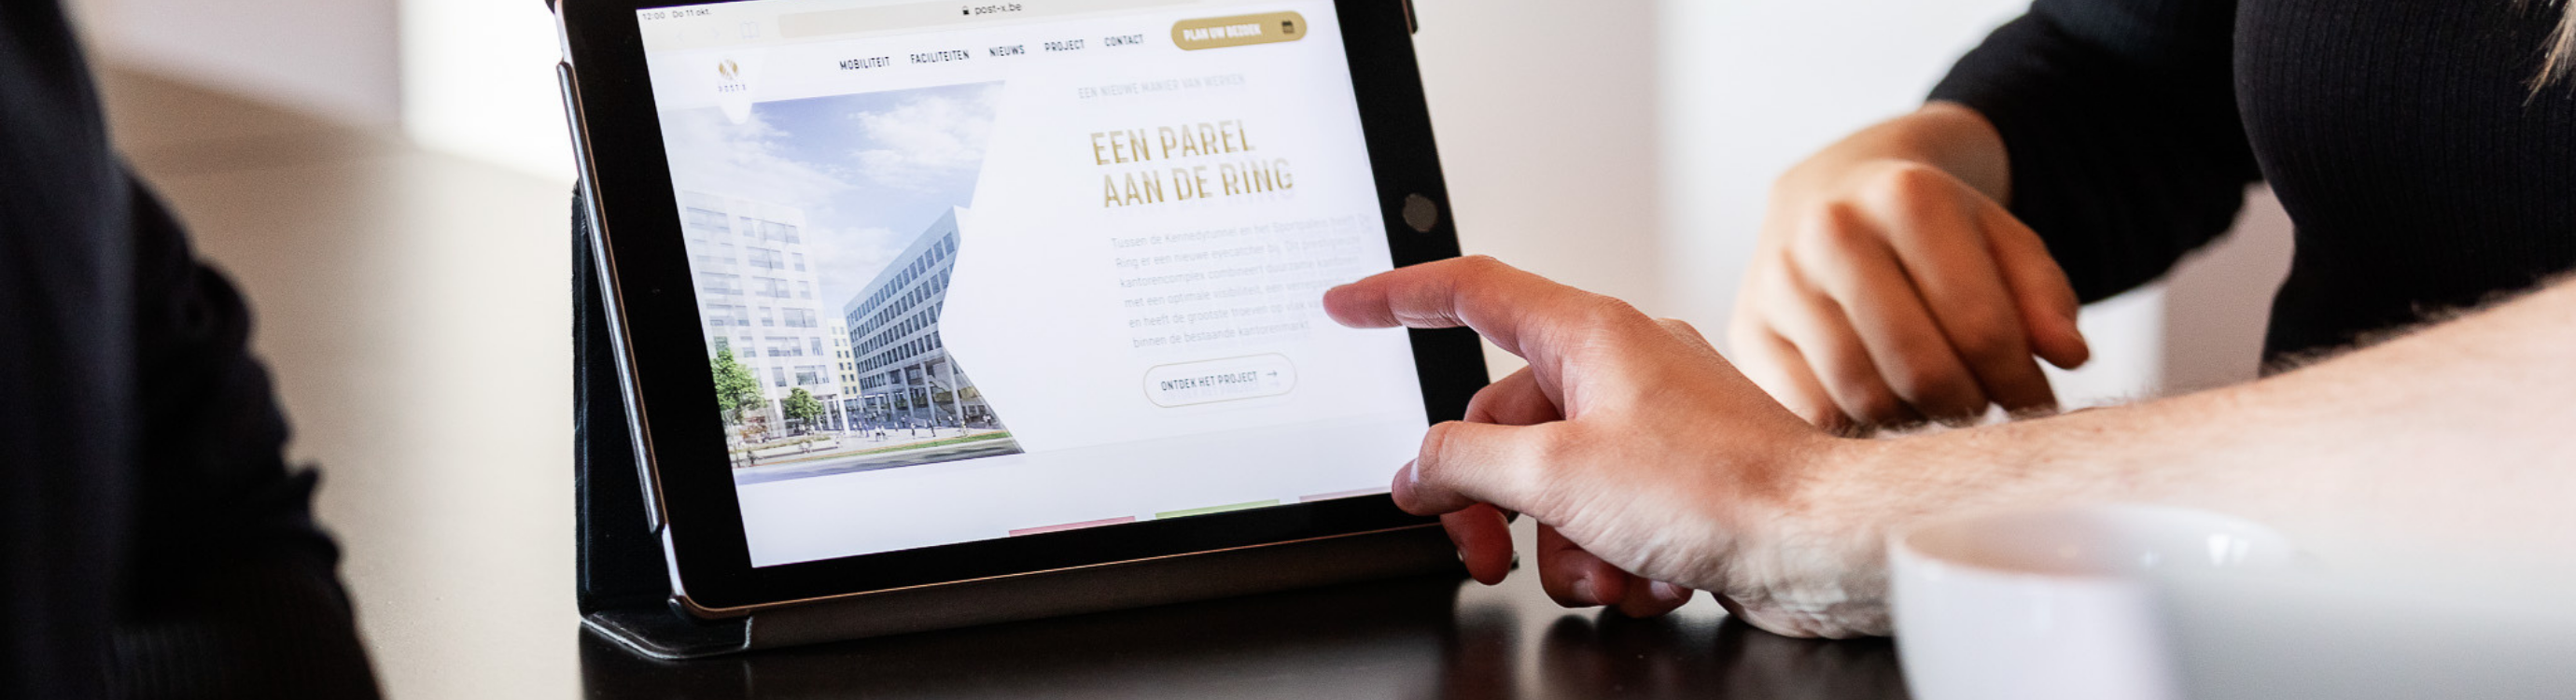 6 tips voor een converterende website